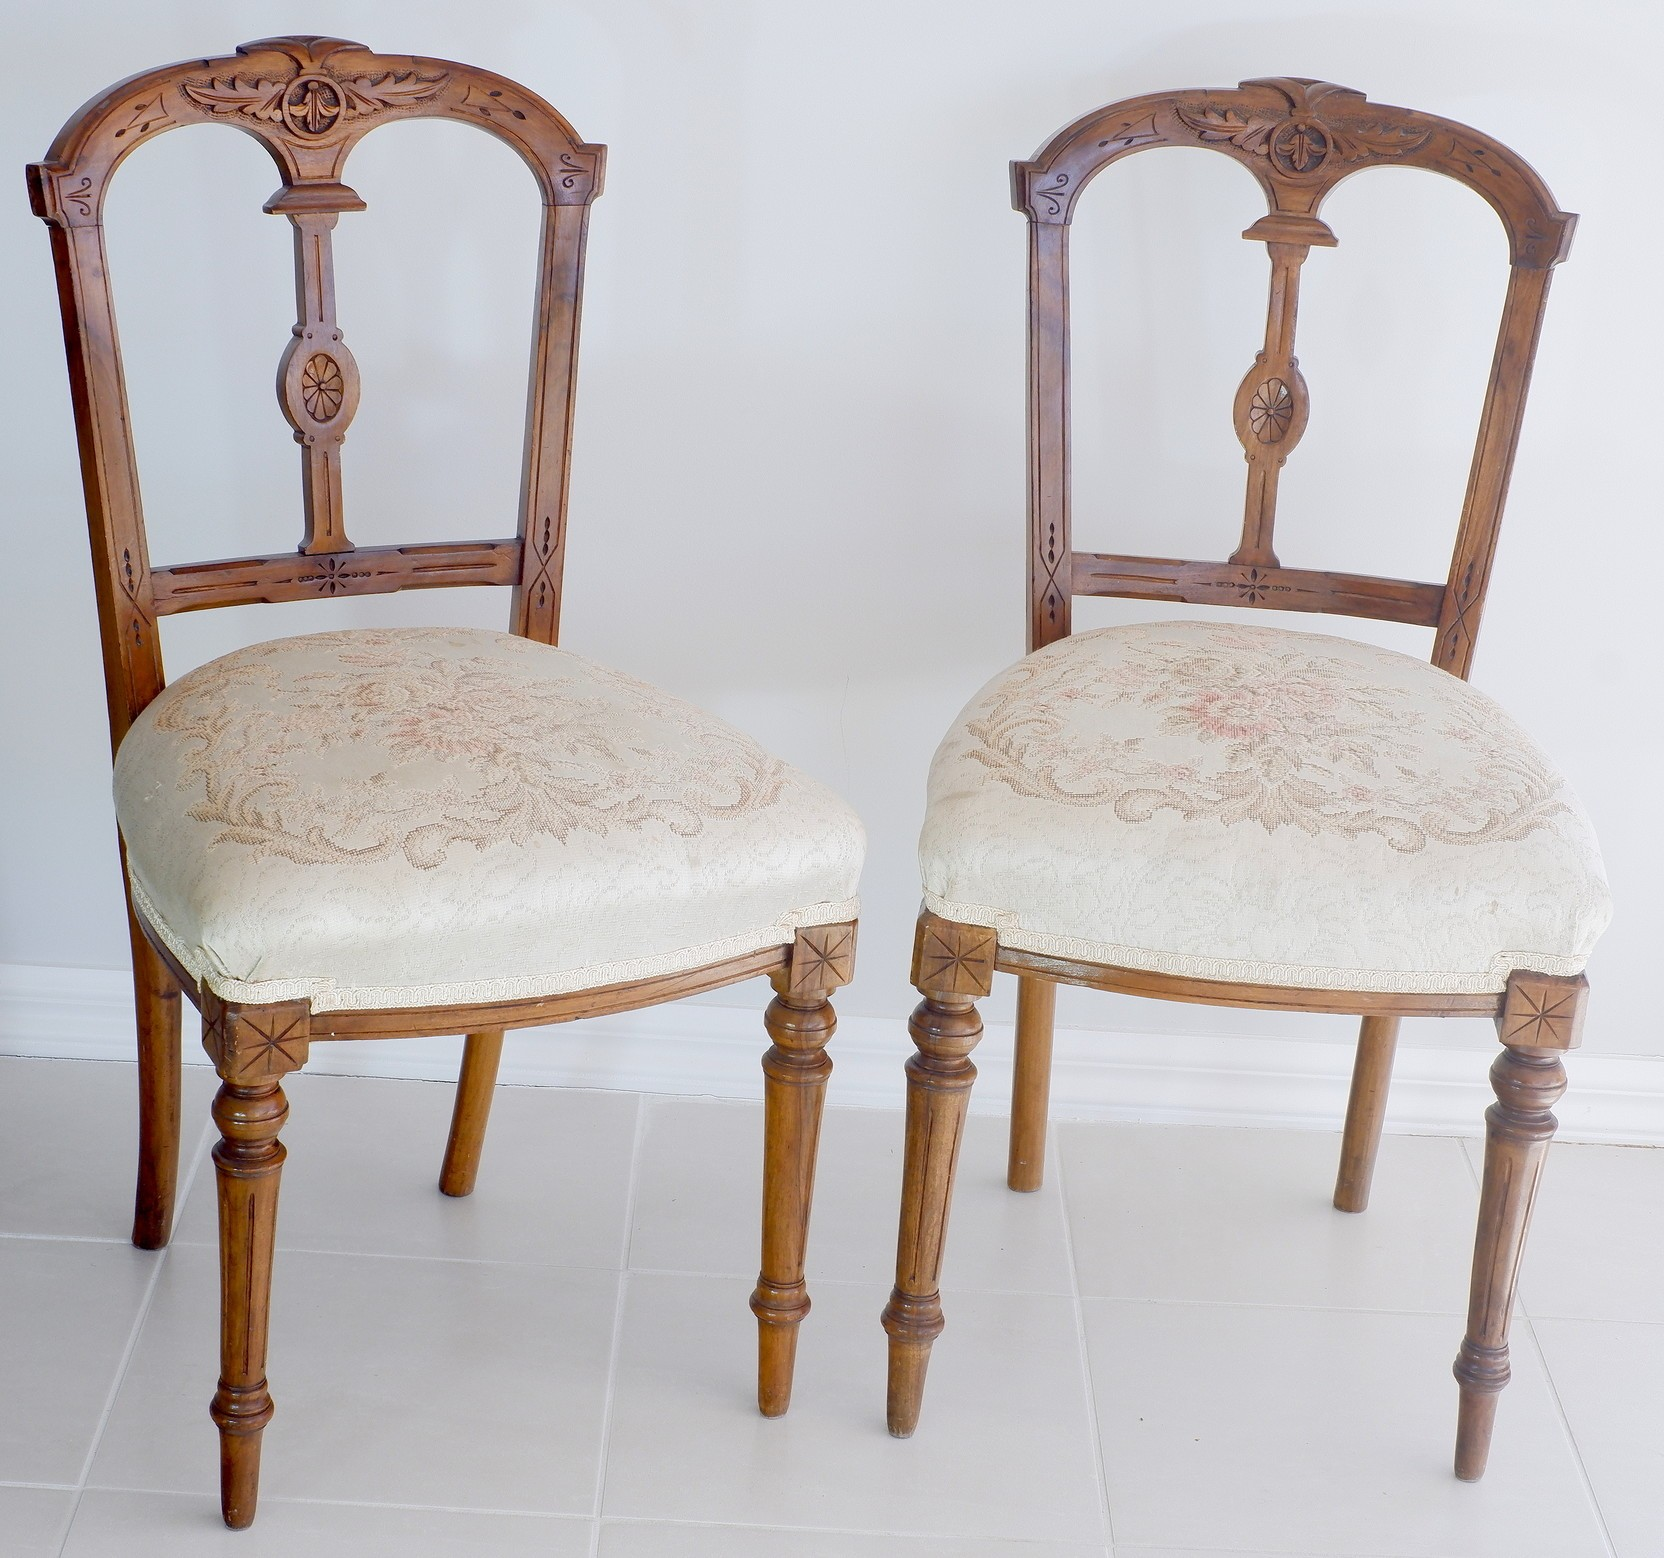 'Pair of Late Victorian Walnut Side Chairs with Embroidered Seats Circa 1890'